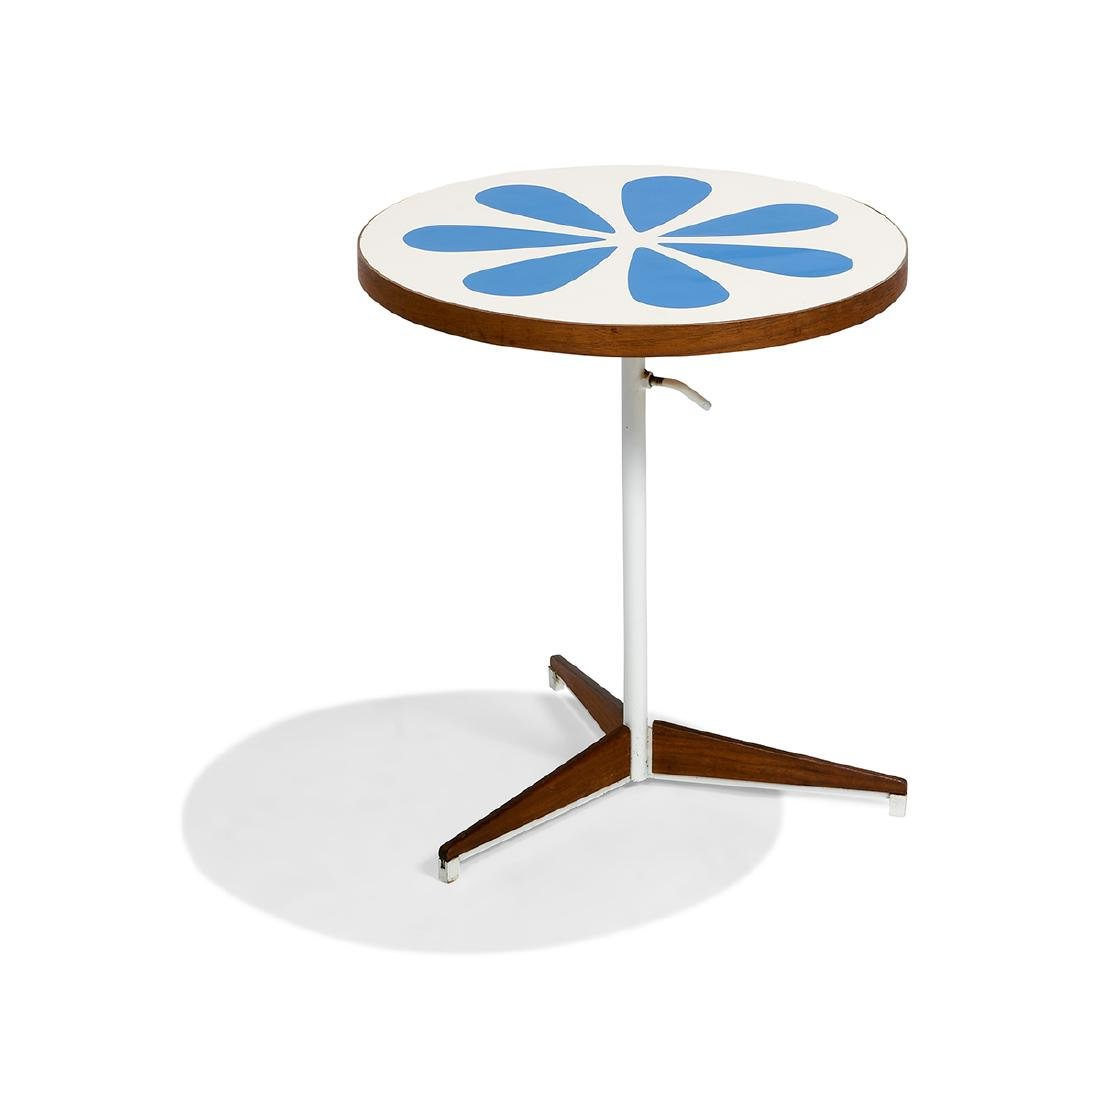 Peter Pepper Products occasional table